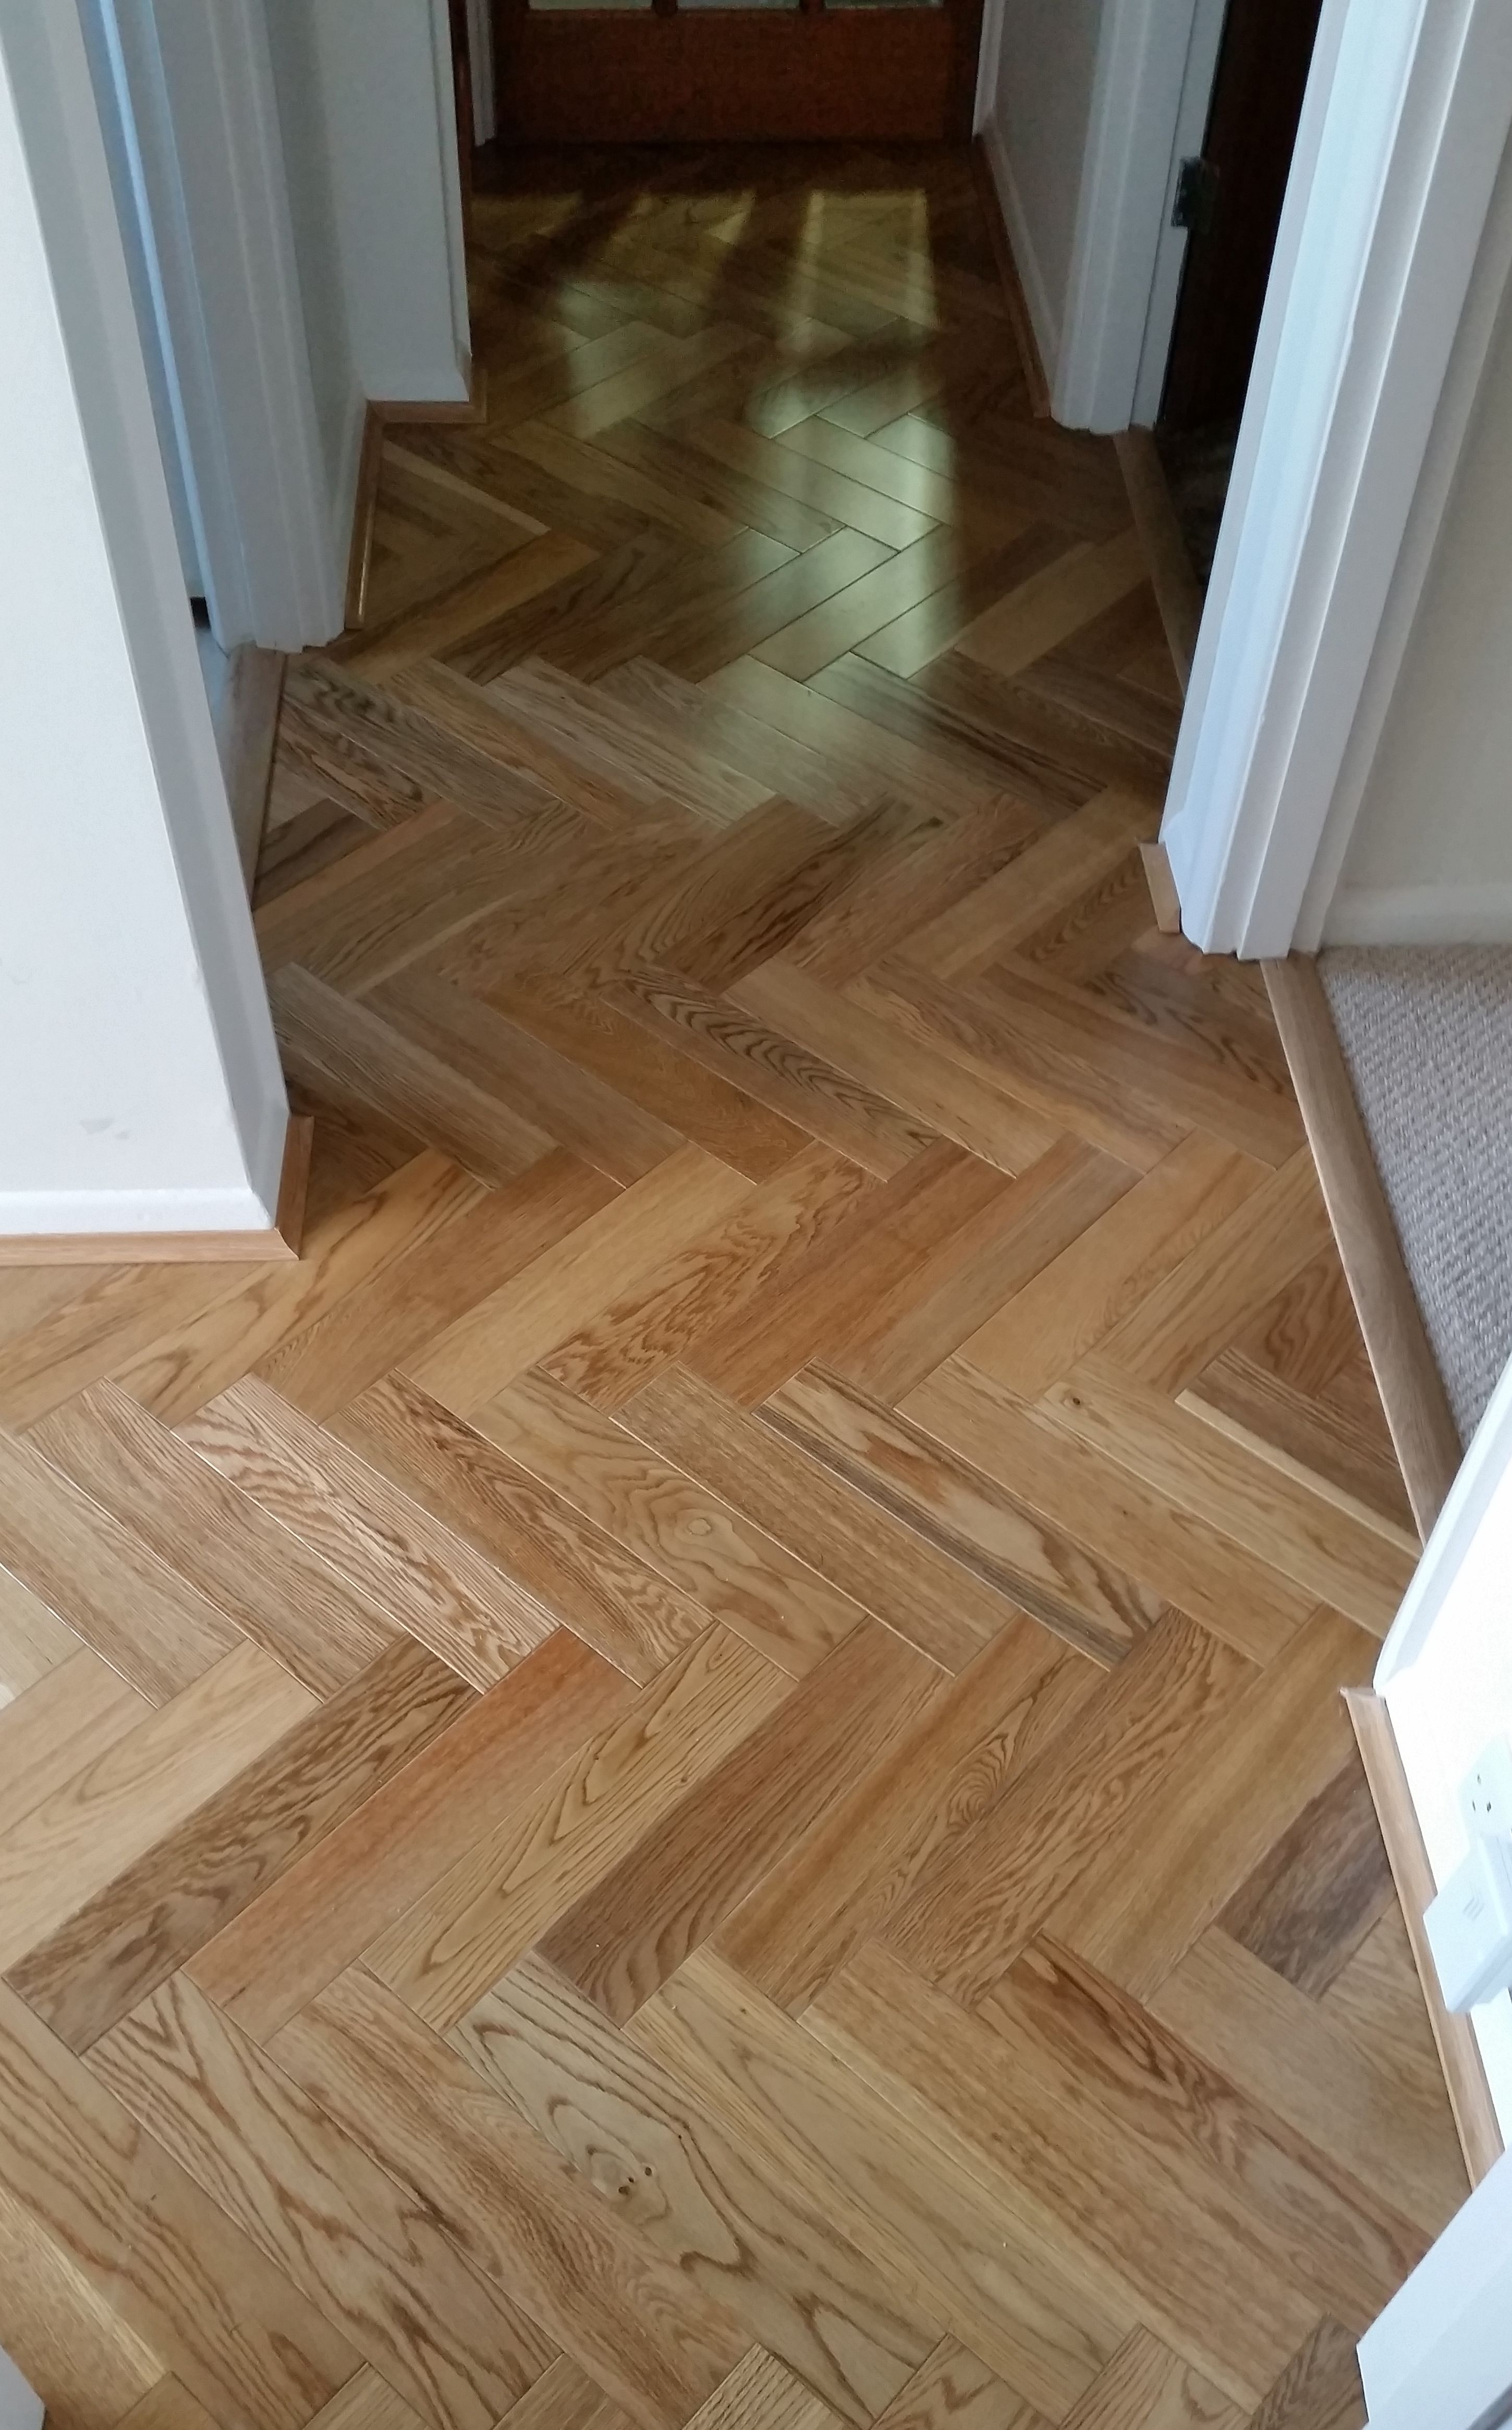 Wood Parquet Flooring By Carter Thorne Carpets Wood Parquet Flooring Wood Parquet Parquet Flooring